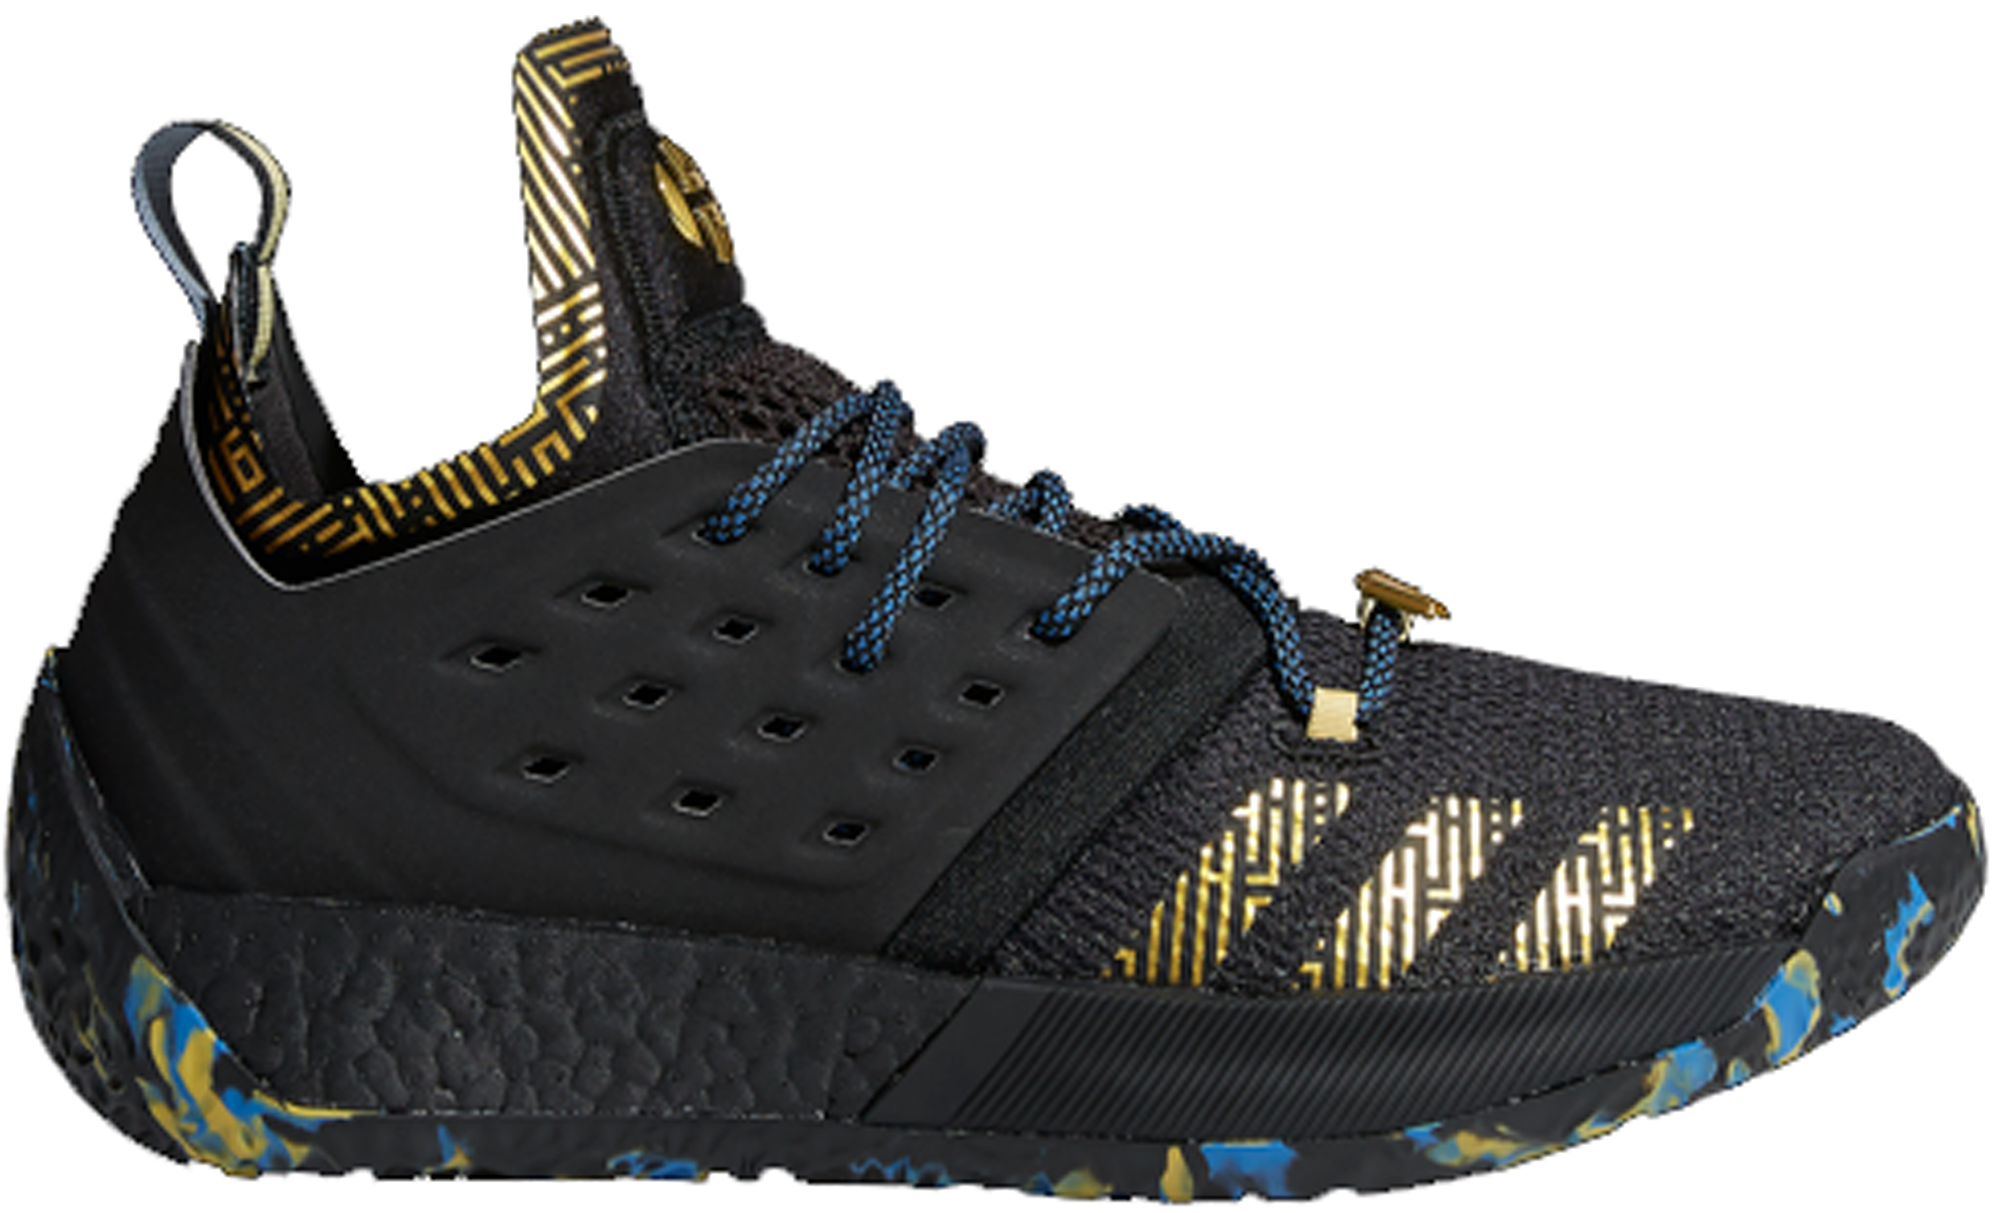 62be8769fdc6b ... where can i buy adidas harden vol. 2 mvp 2018 32e8d 5617d